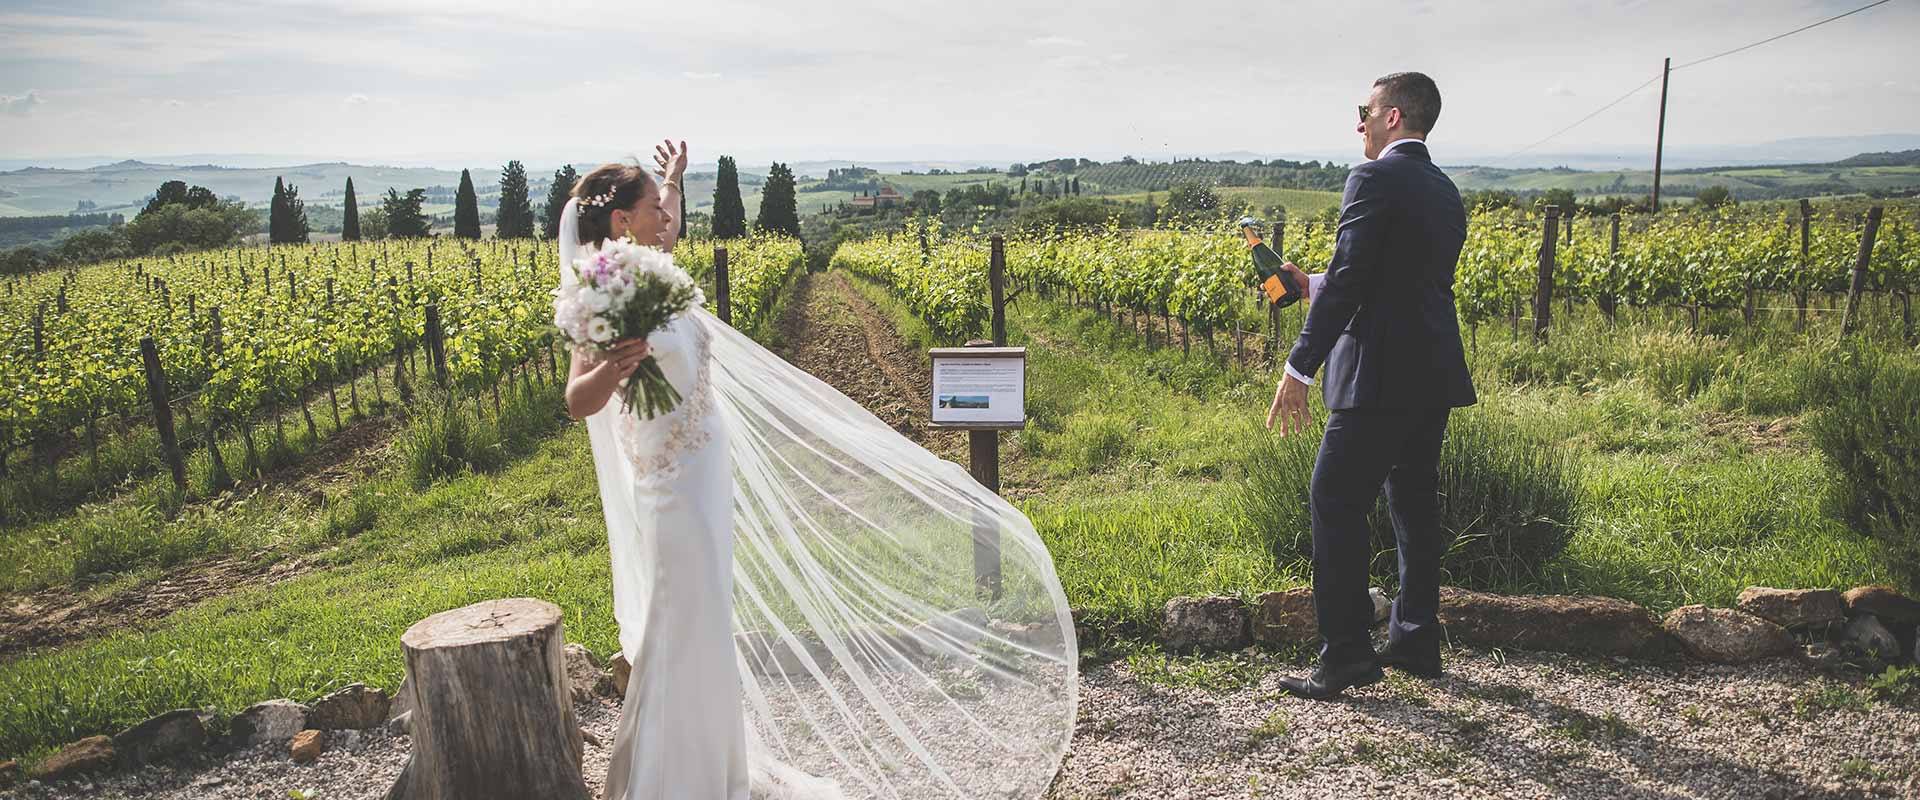 Turismo-del-vino-in-Toscana-matrimoni-wine-wedding-destination